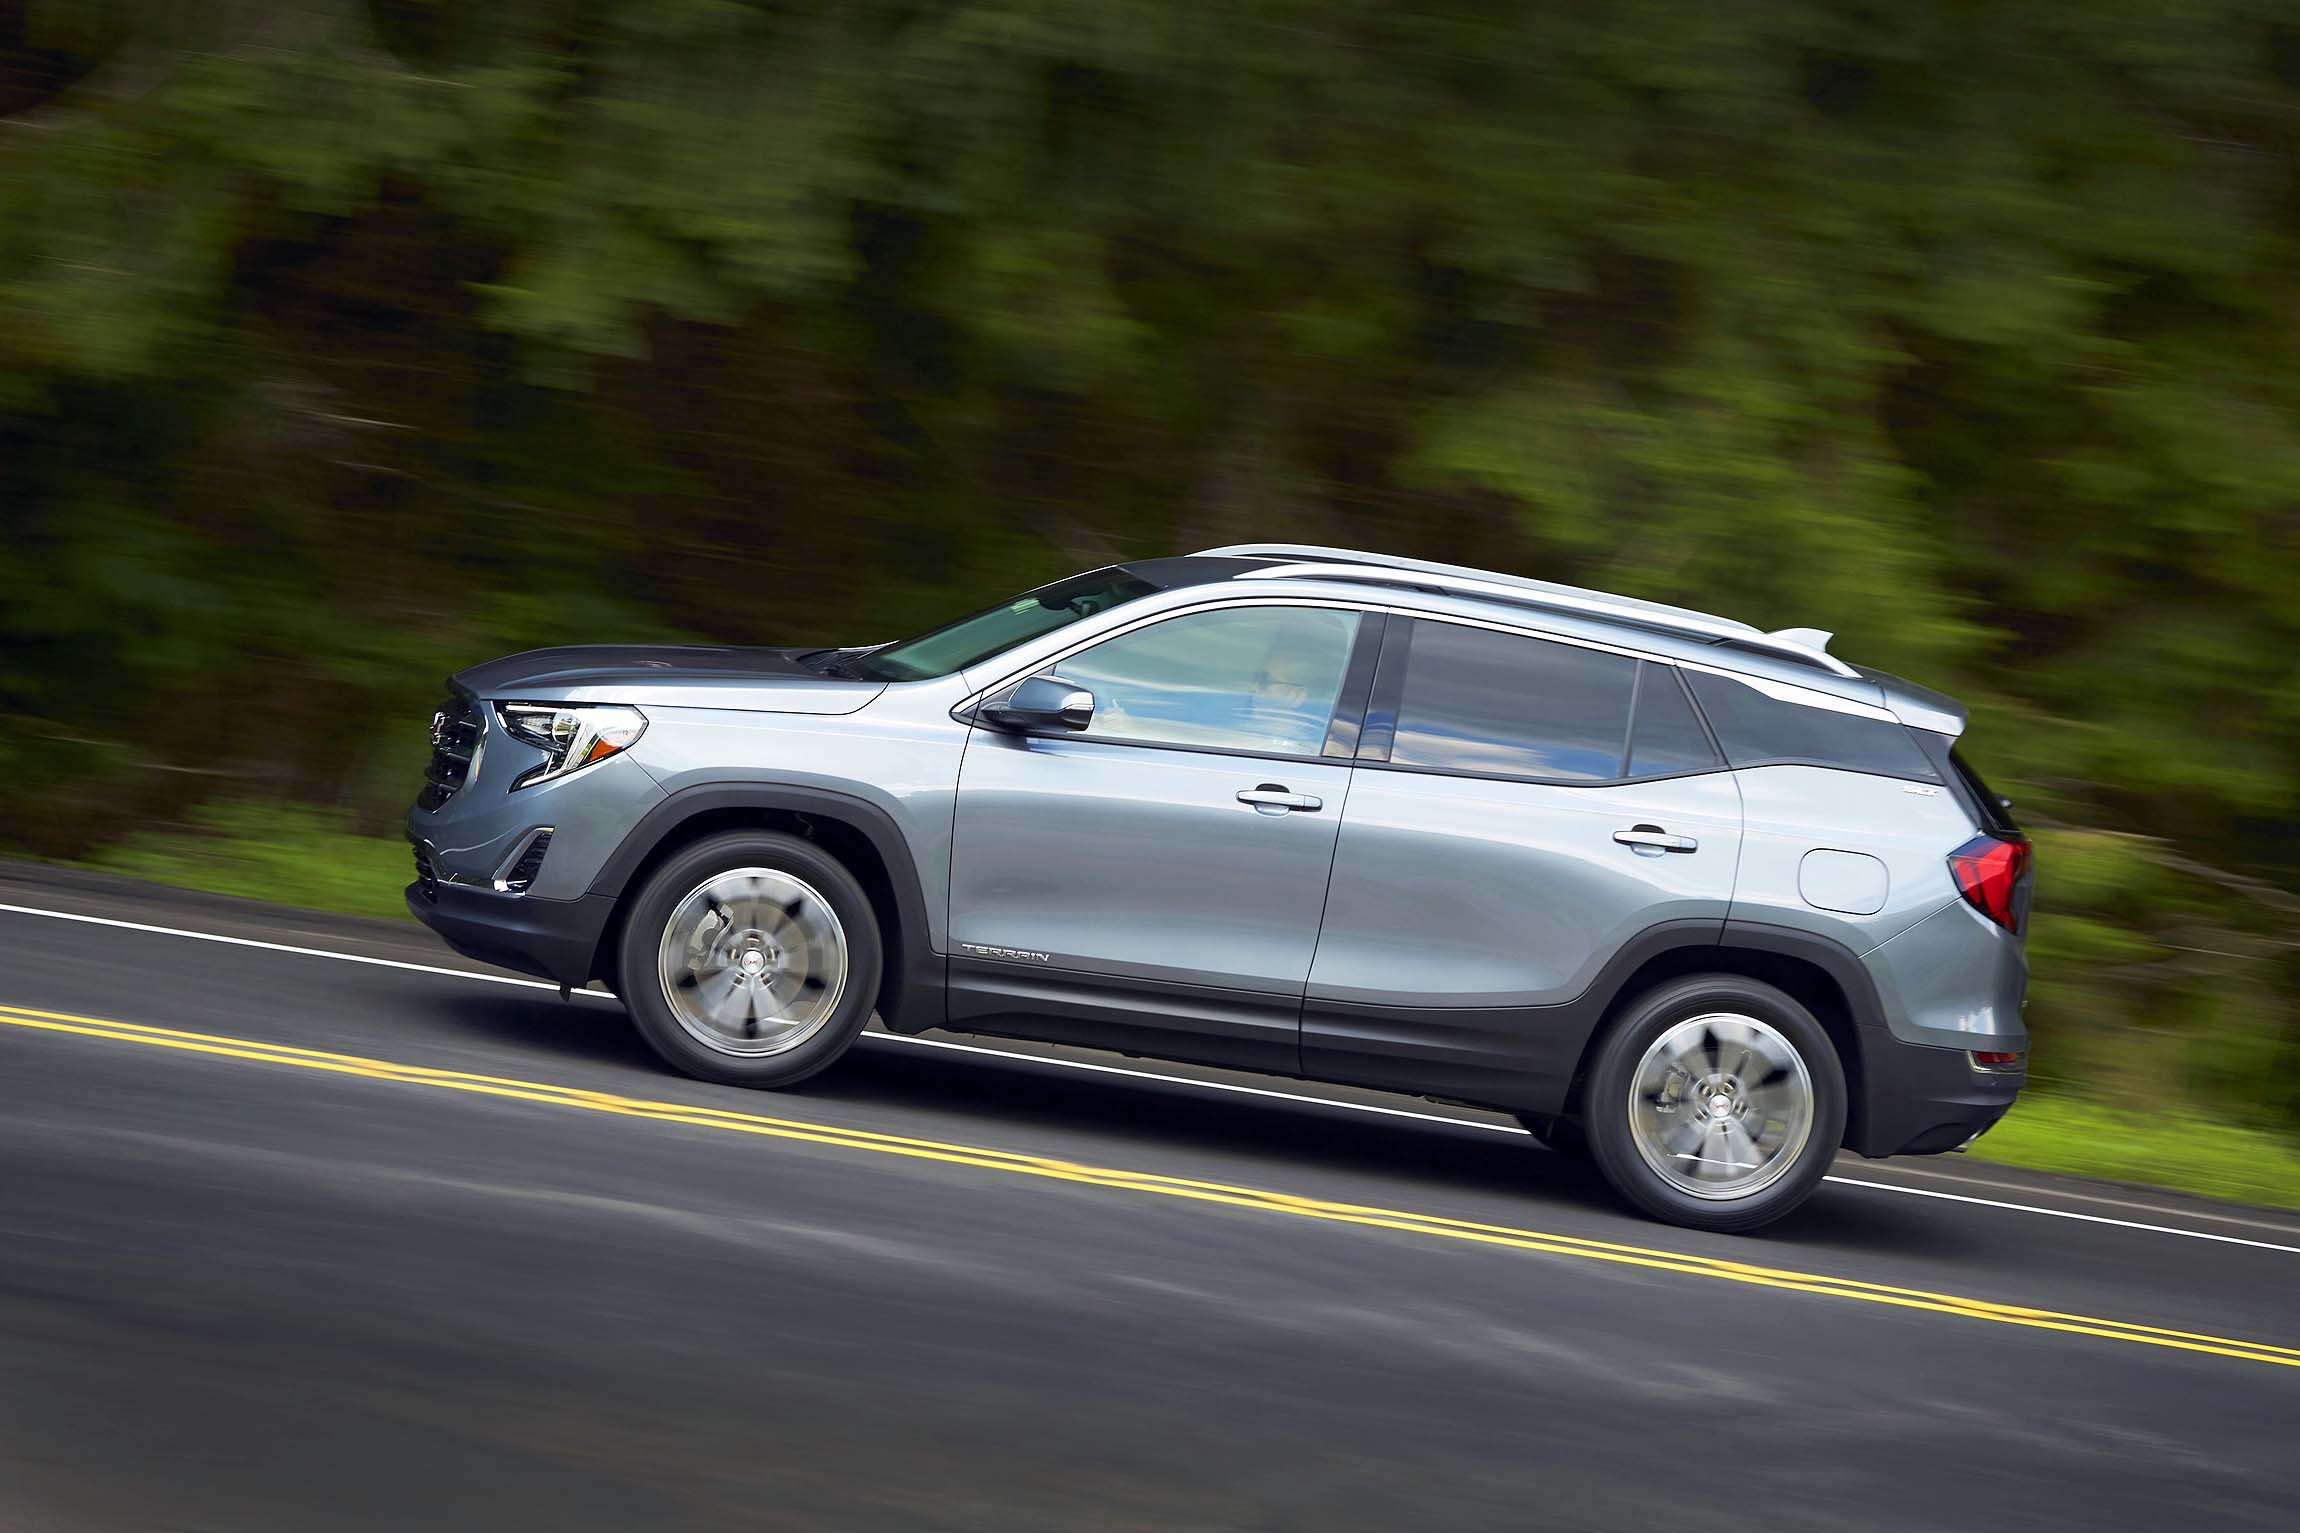 2020 GMC Terrain prices and expert review - The Car Connection